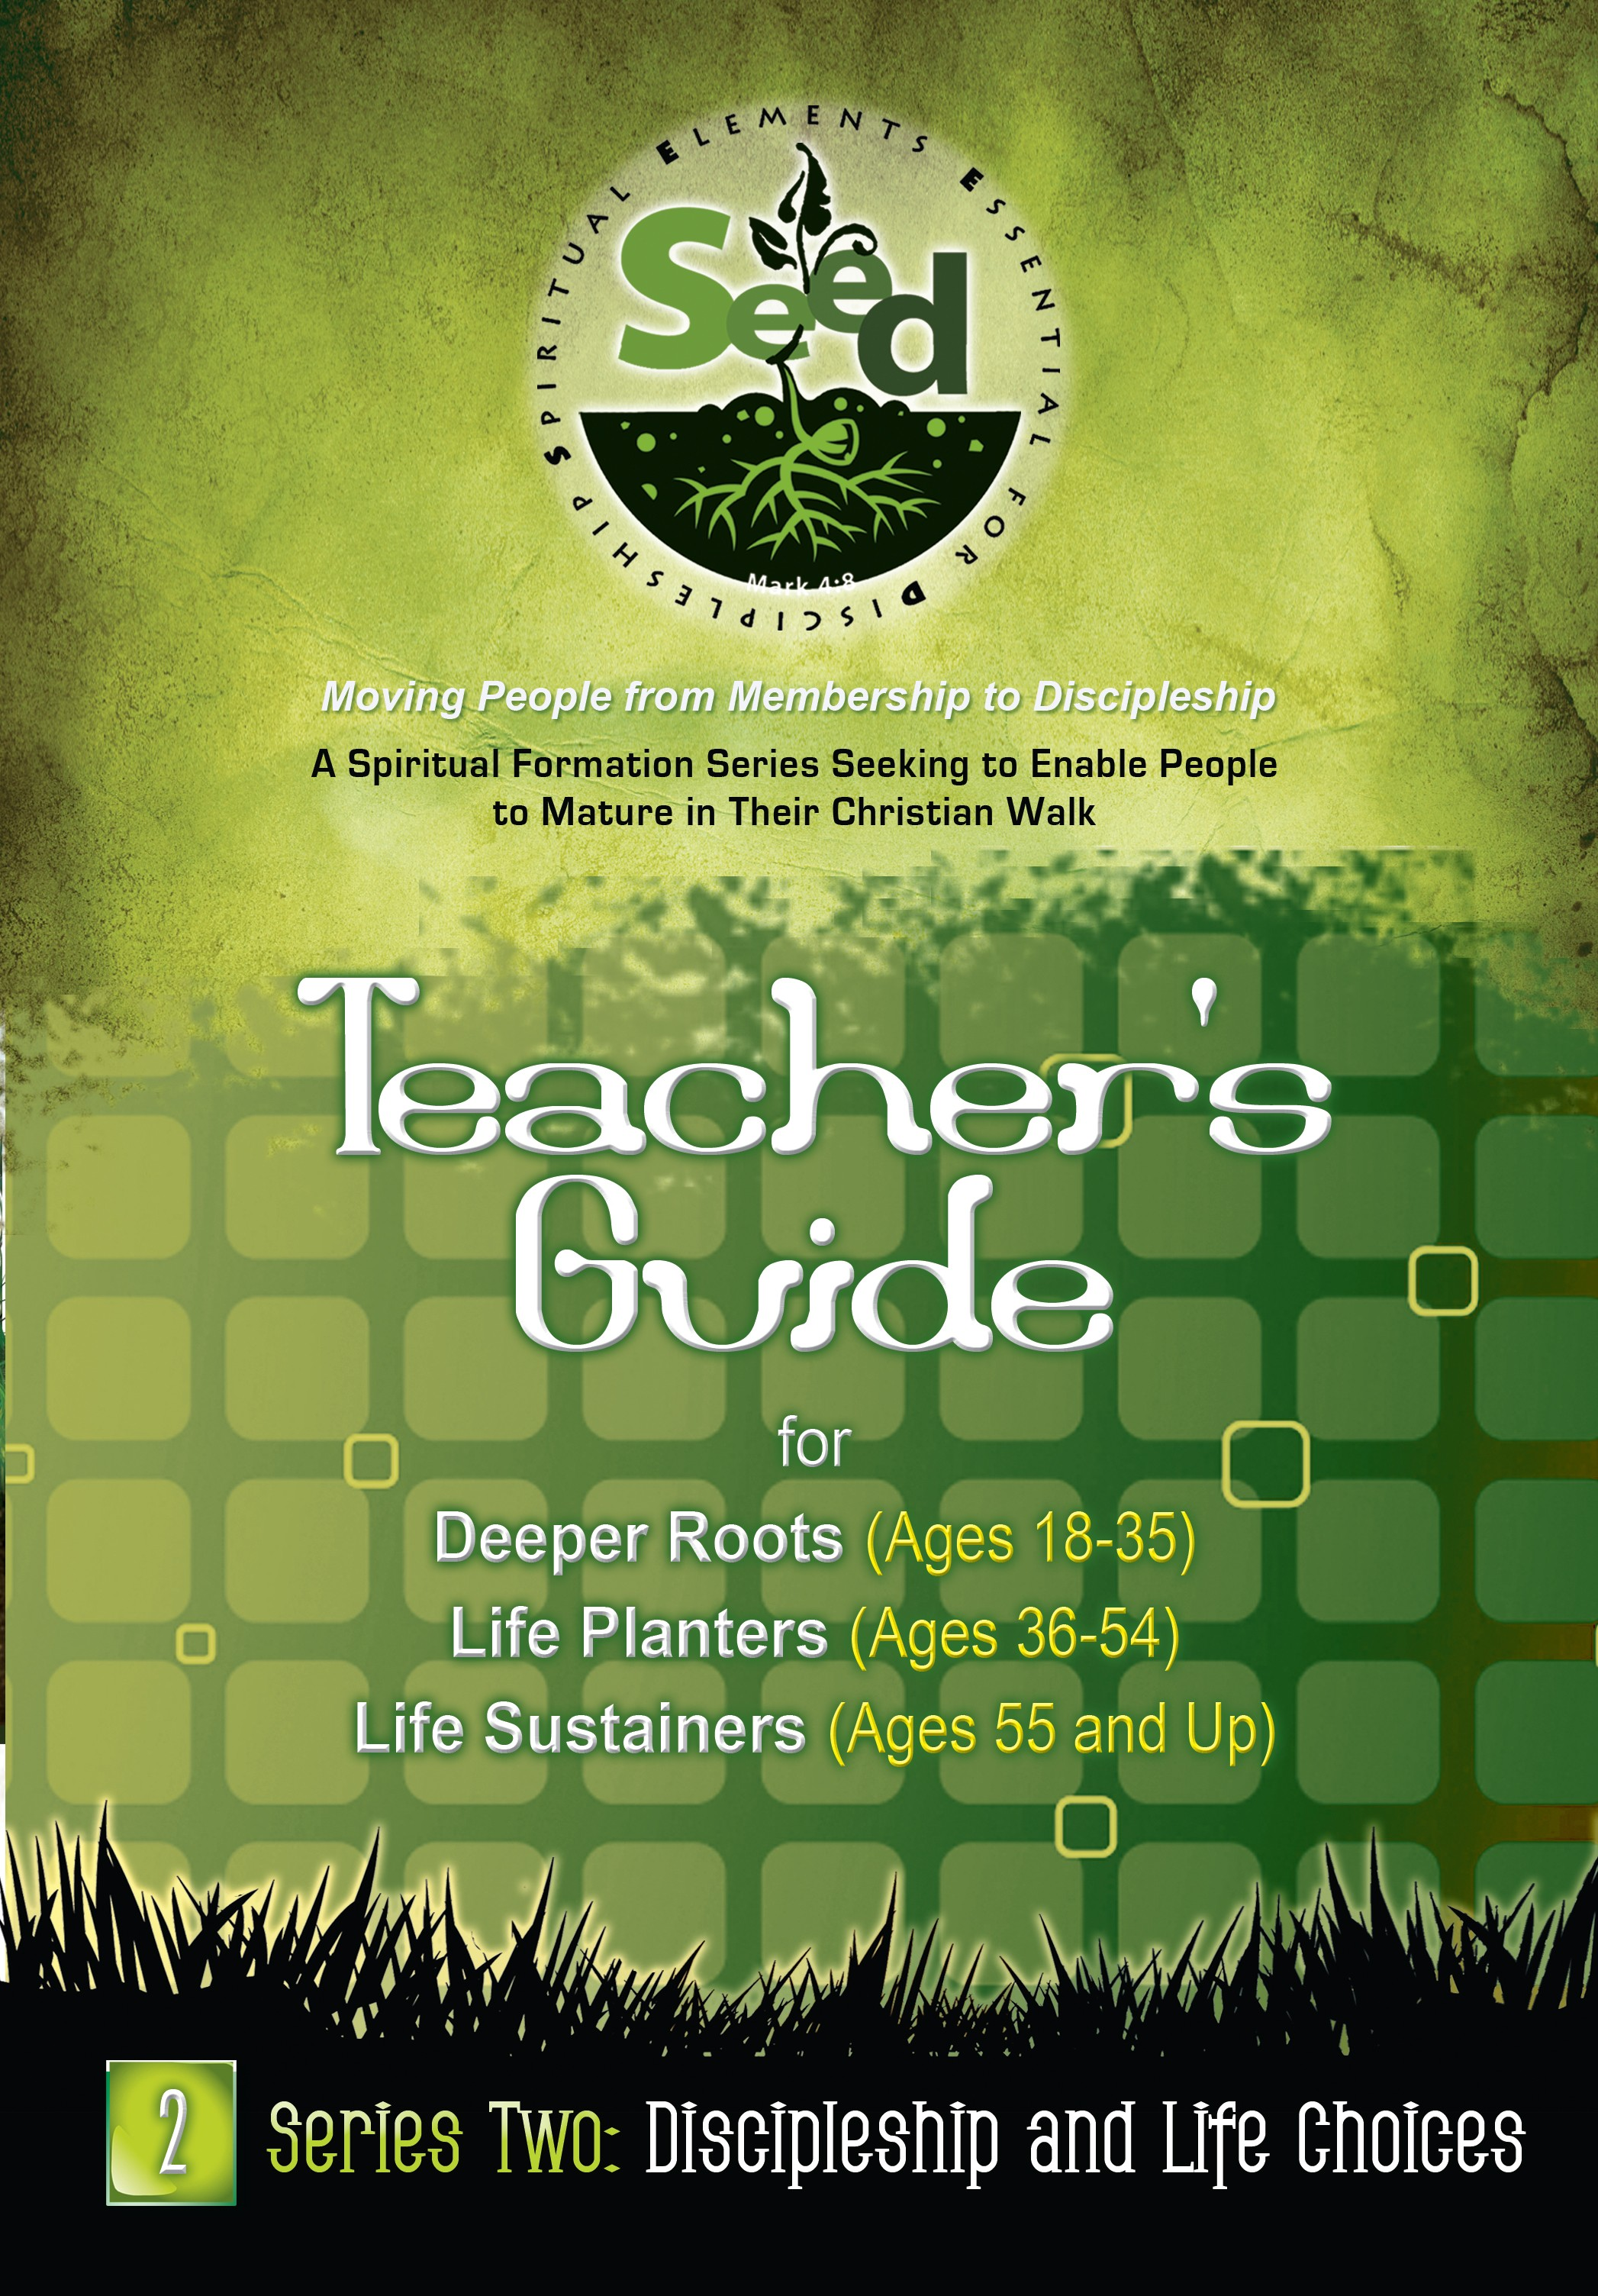 SEED Adult Teacher's Guide: Series 2: Discipleship and Life Choices